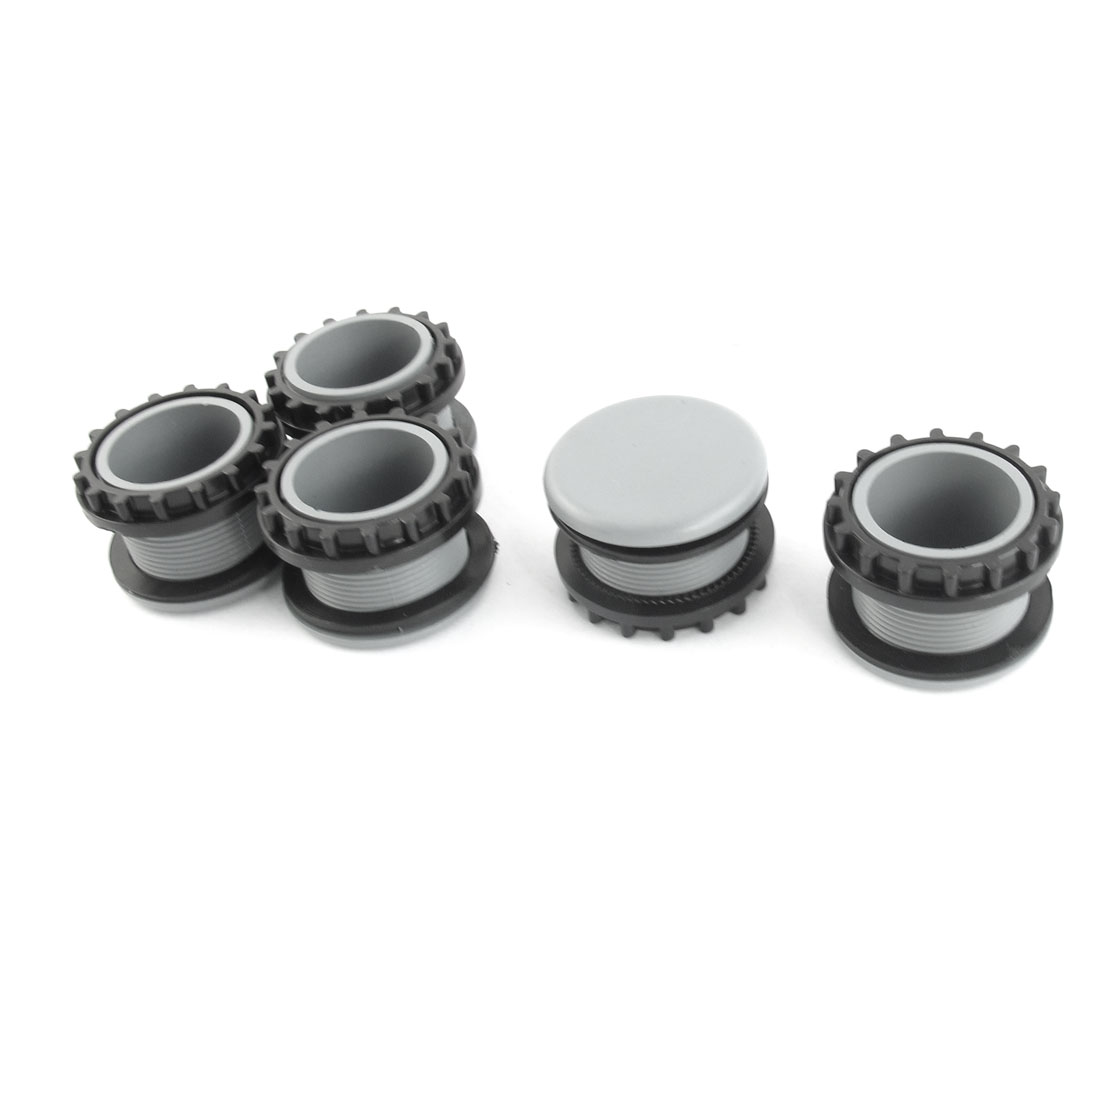 5Pcs 22mm Dia Thread Gray Plastic Mount Hole Panel Cap Cover